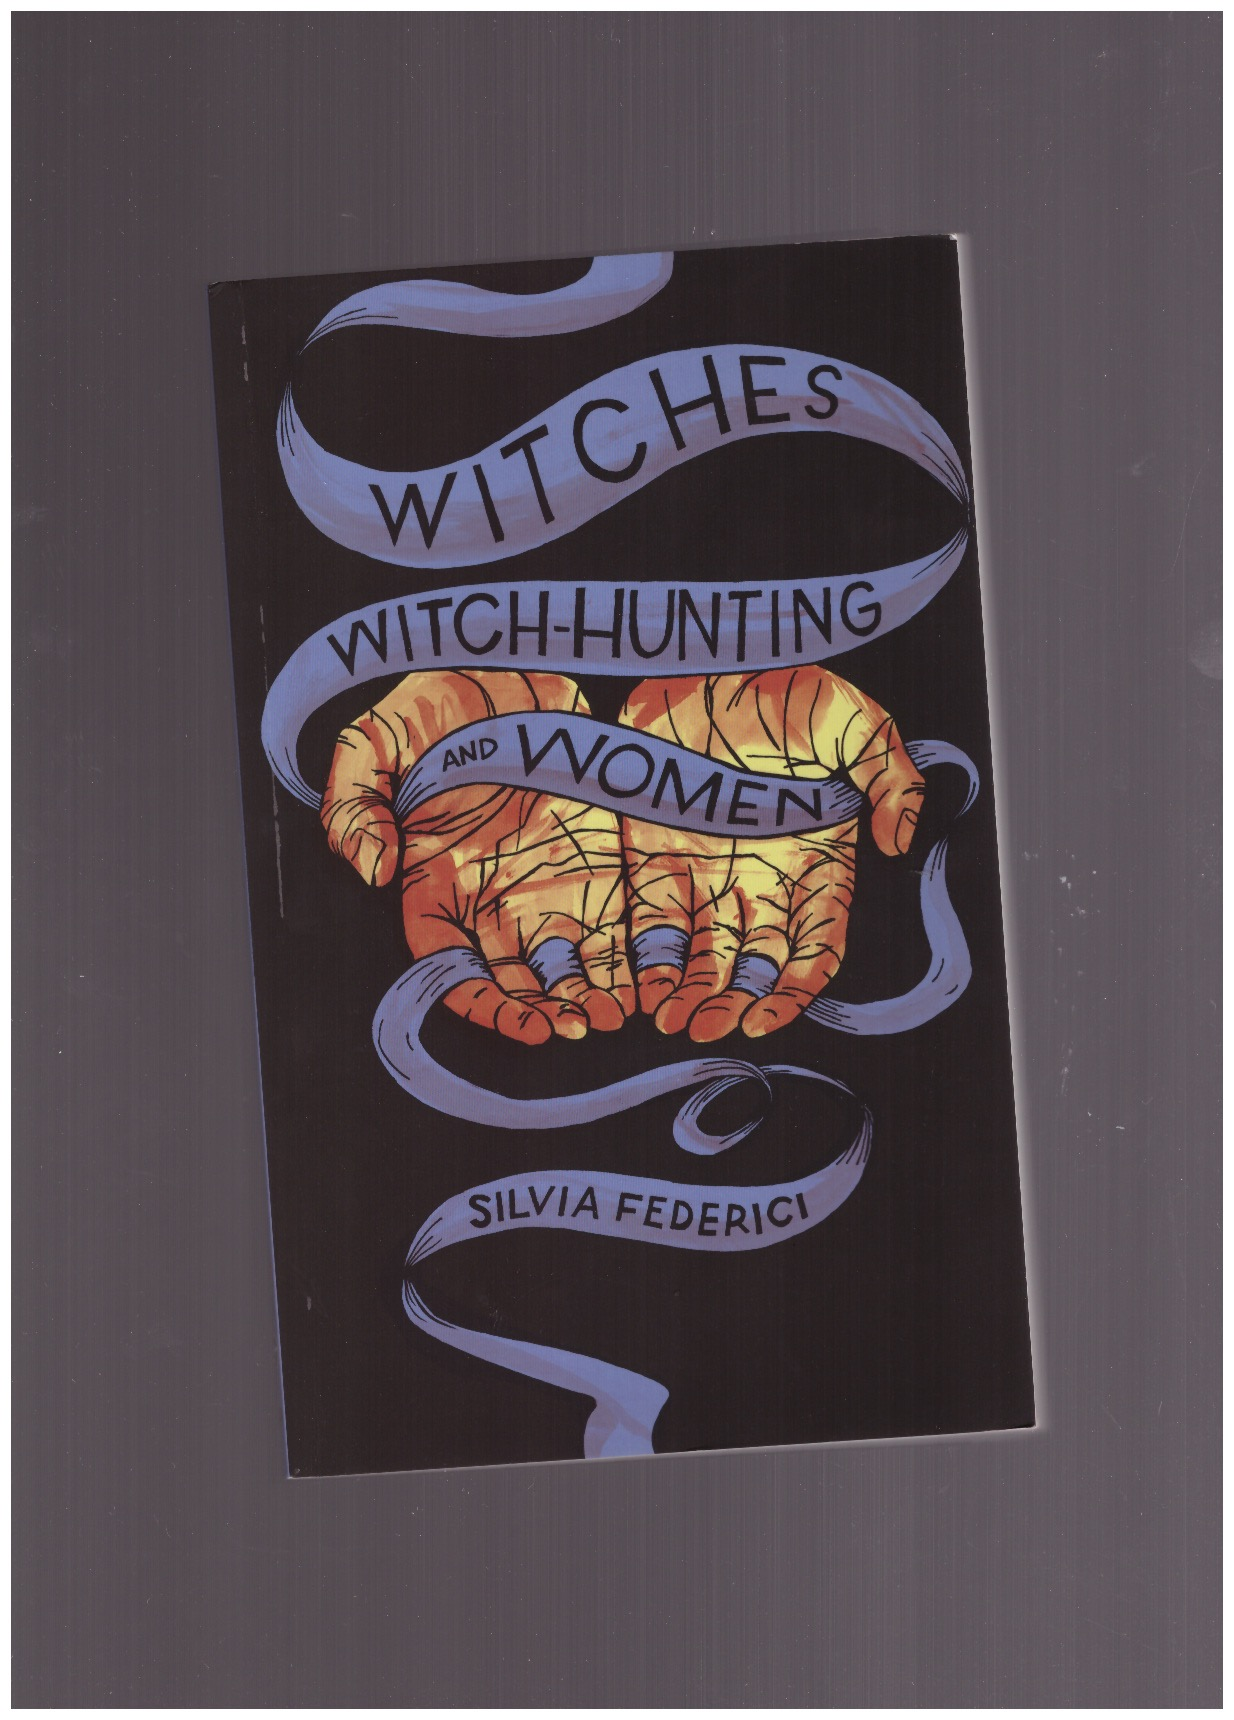 FEDERICI, Silvia - Witches, Witch-hunting and Women